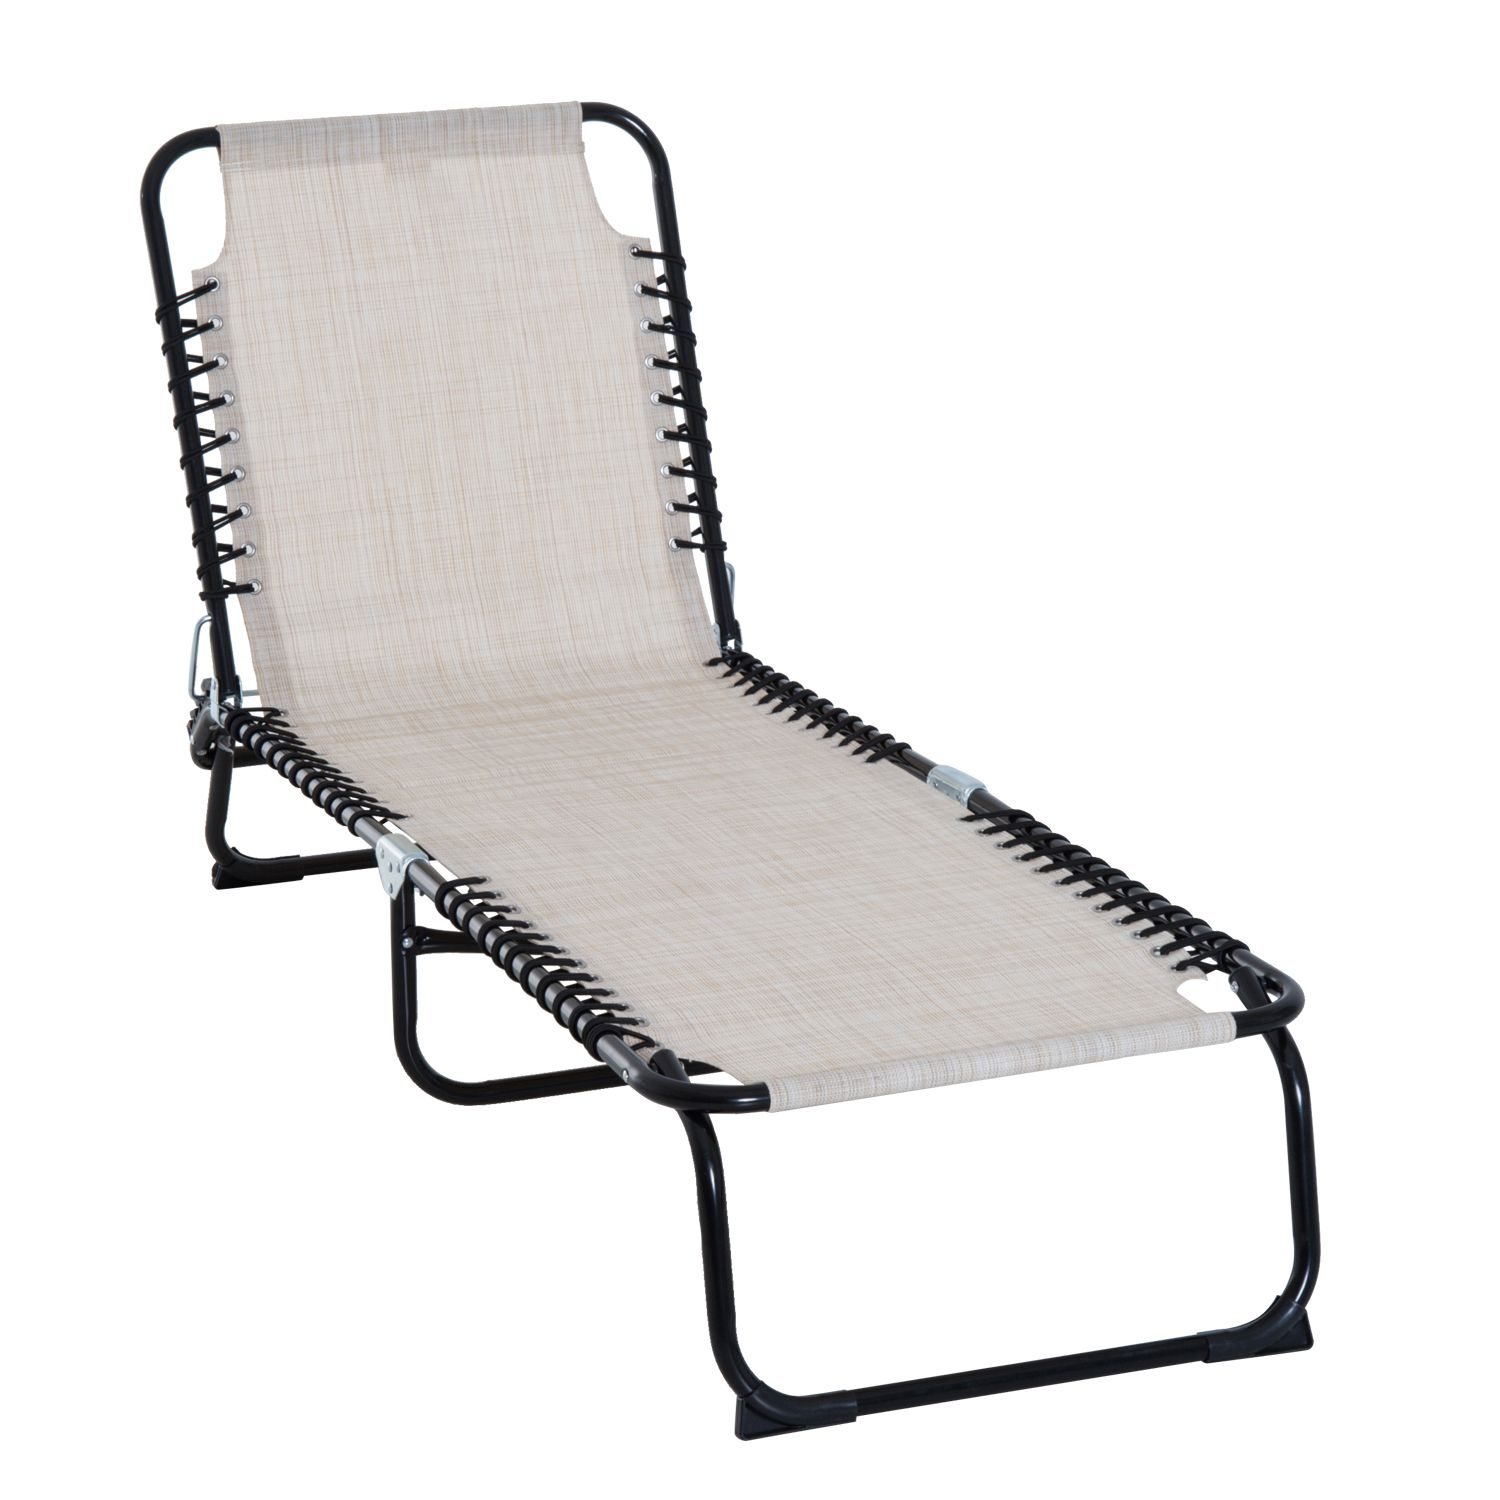 Outsunny 3Position Reclining Beach Chair Chaise Lounge